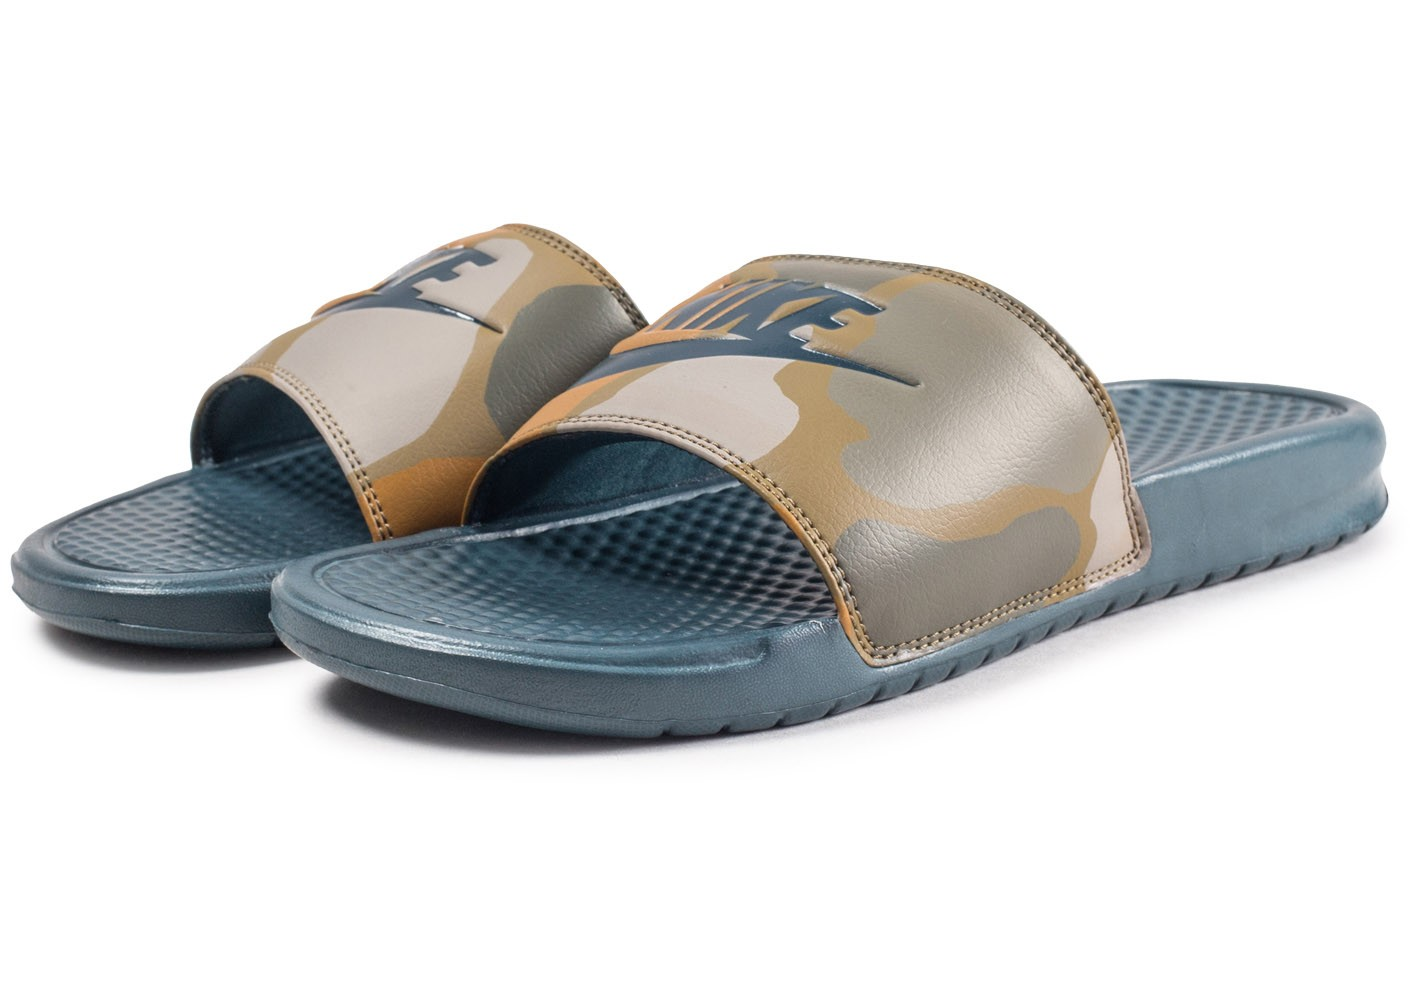 timeless design 0068f fa093 ... Chaussures Nike Sandales Benassi Printed marron vue intérieure ...